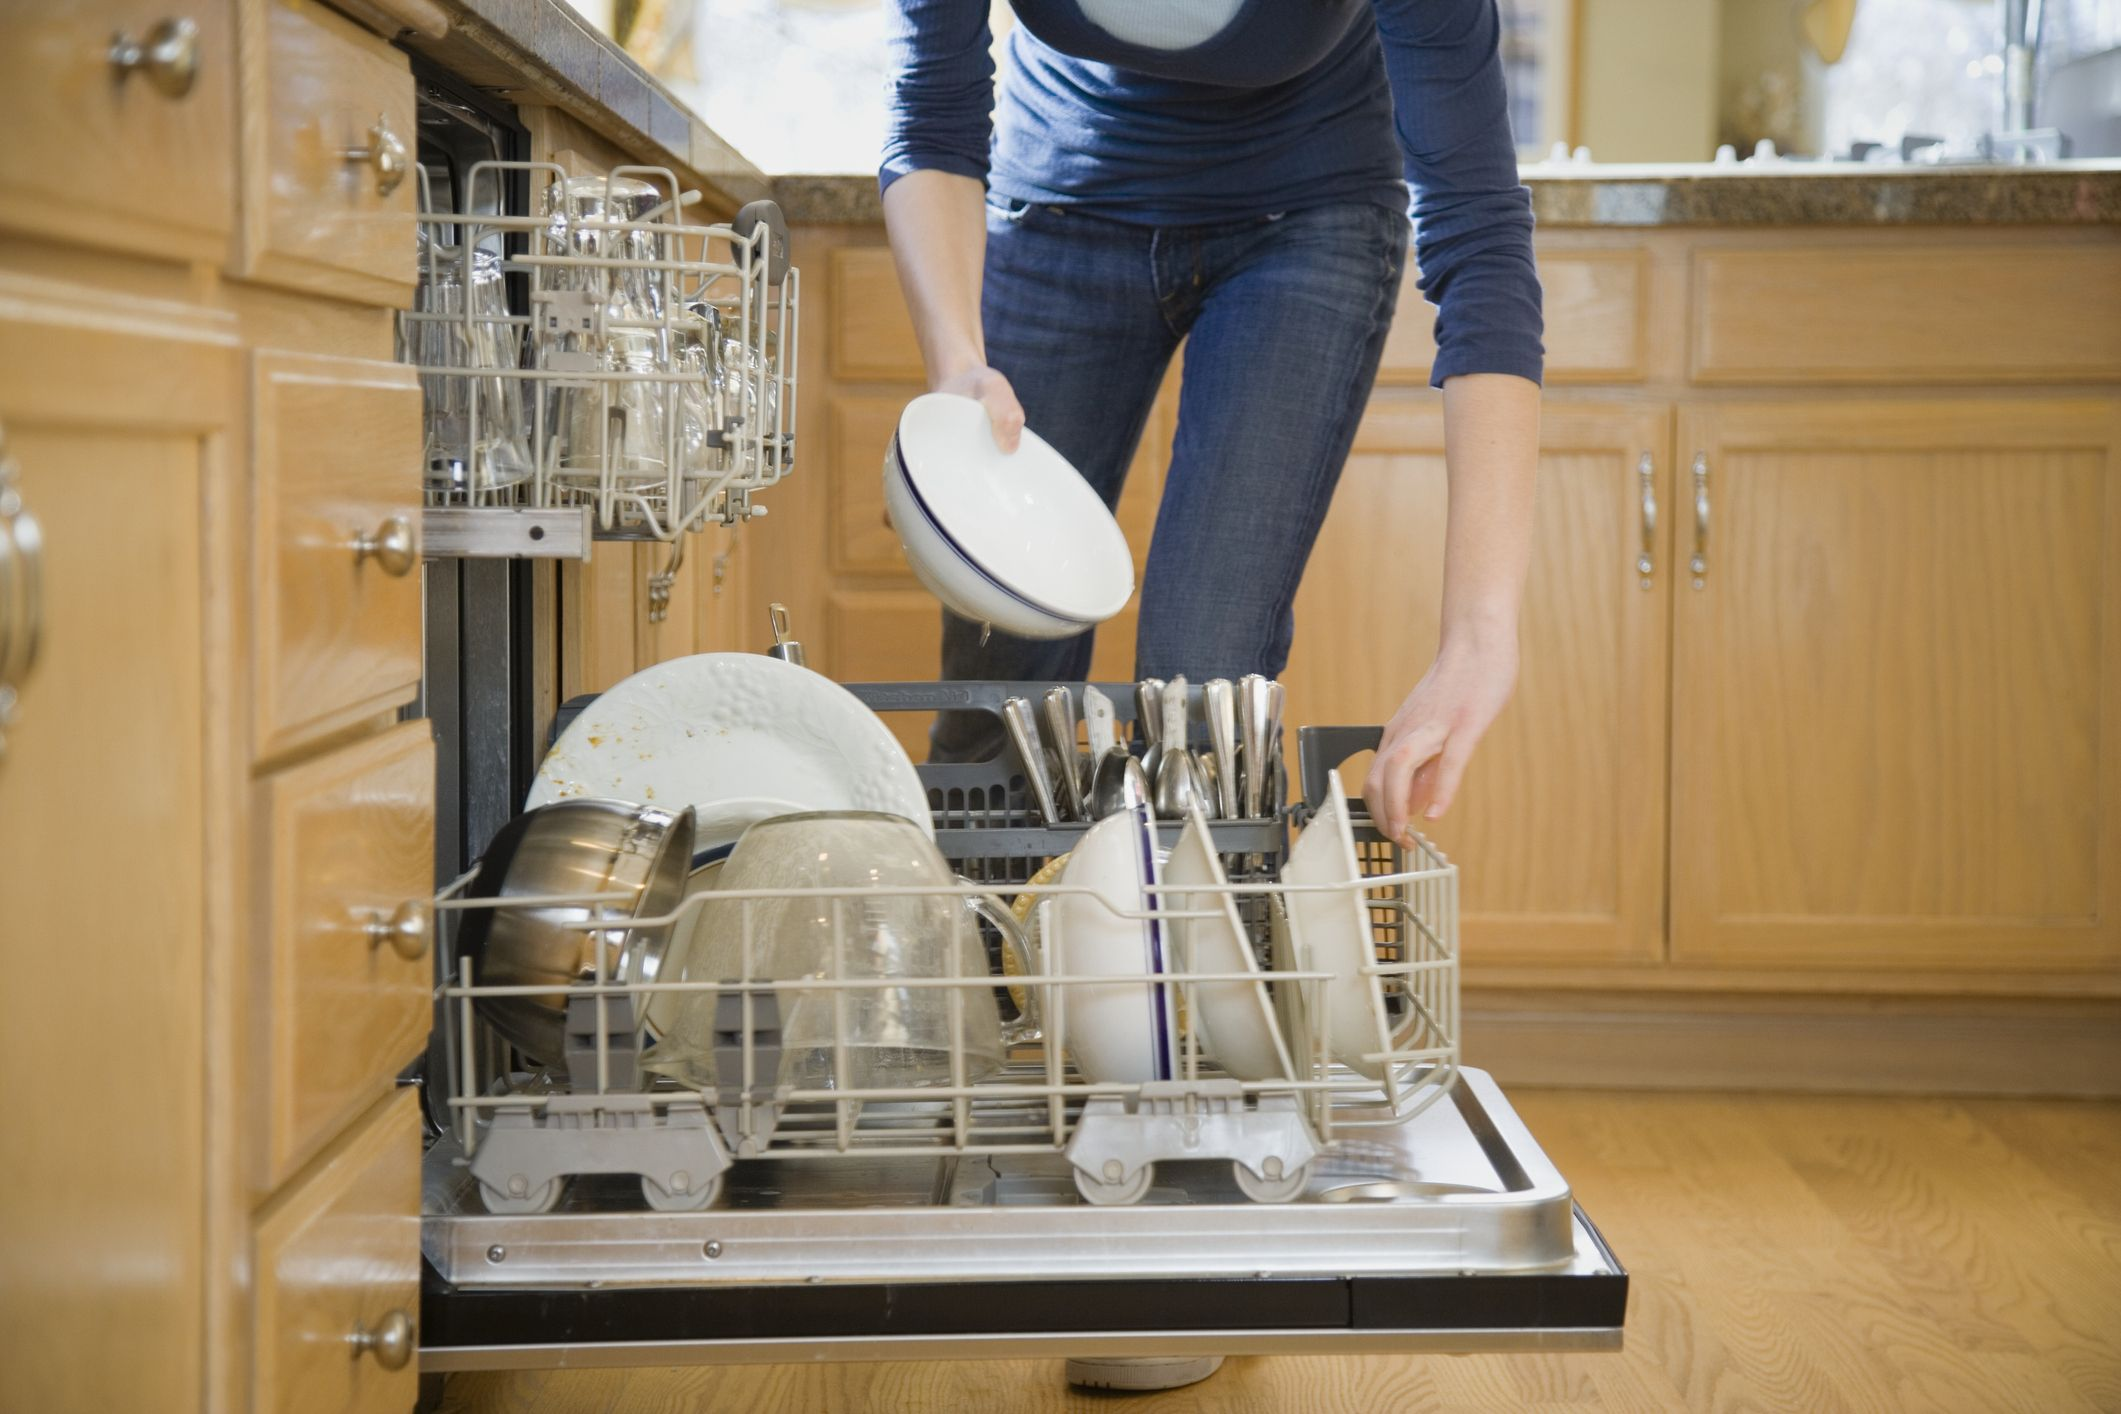 How To Clean A Smelly Dishwasher The Inside Of